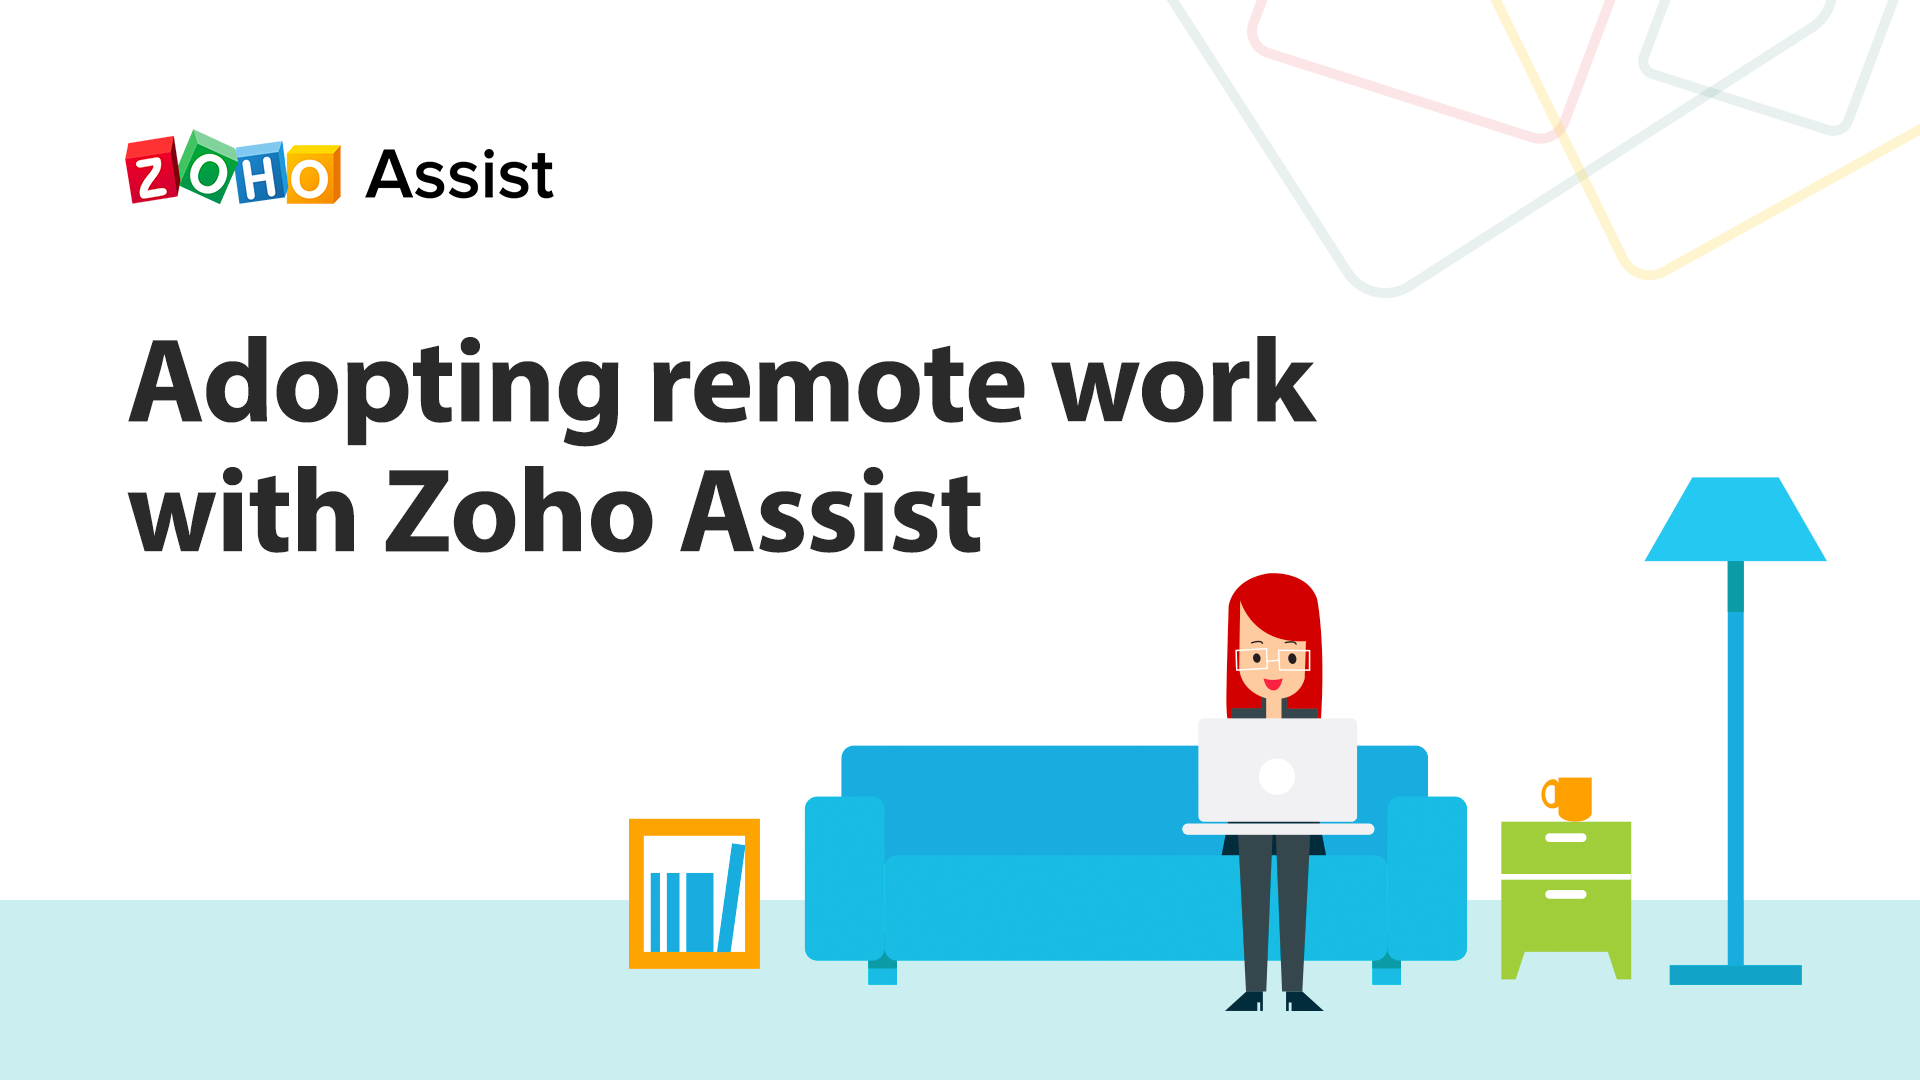 Adopting remote work with Zoho Assist: Extending 60-day free licenses with all premium features.